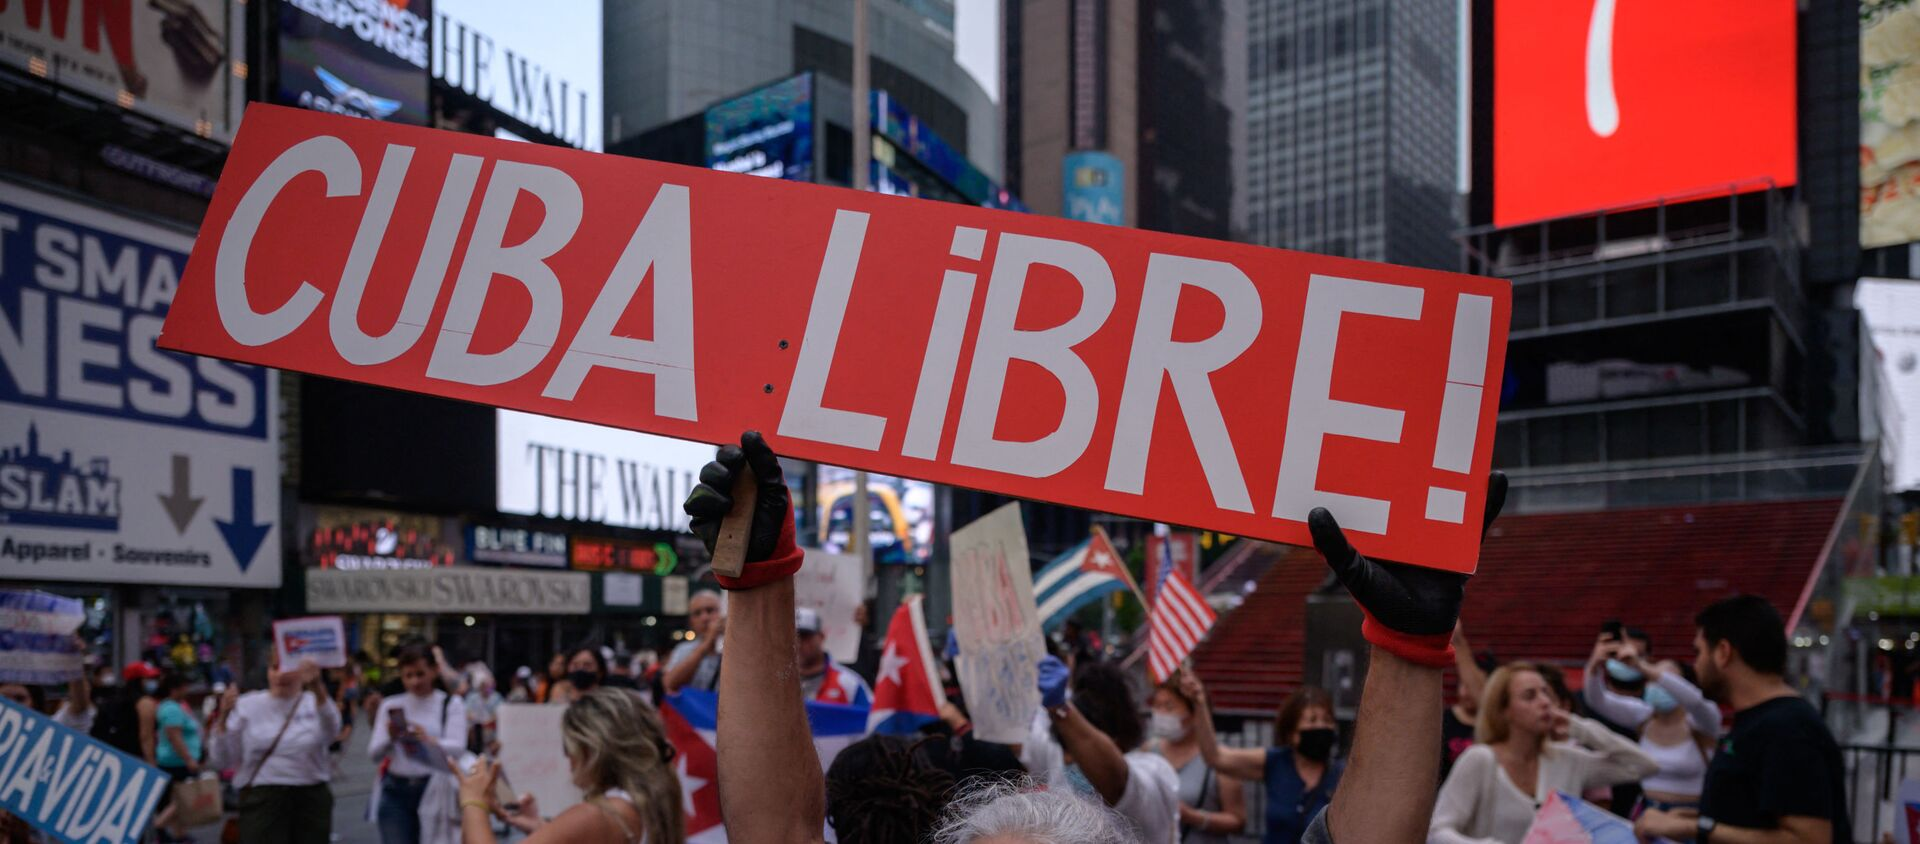 Demonstrators hold placards during a rally held in solidarity with anti-government protests in Cuba, in Times Square, New York on July 13, 2021. - One person died and more than 100 others, including independent journalists and dissidents, have been arrested after unprecedented anti-government protests in Cuba, with some remaining in custody on Tuesday, observers and activists said. - Sputnik International, 1920, 17.07.2021